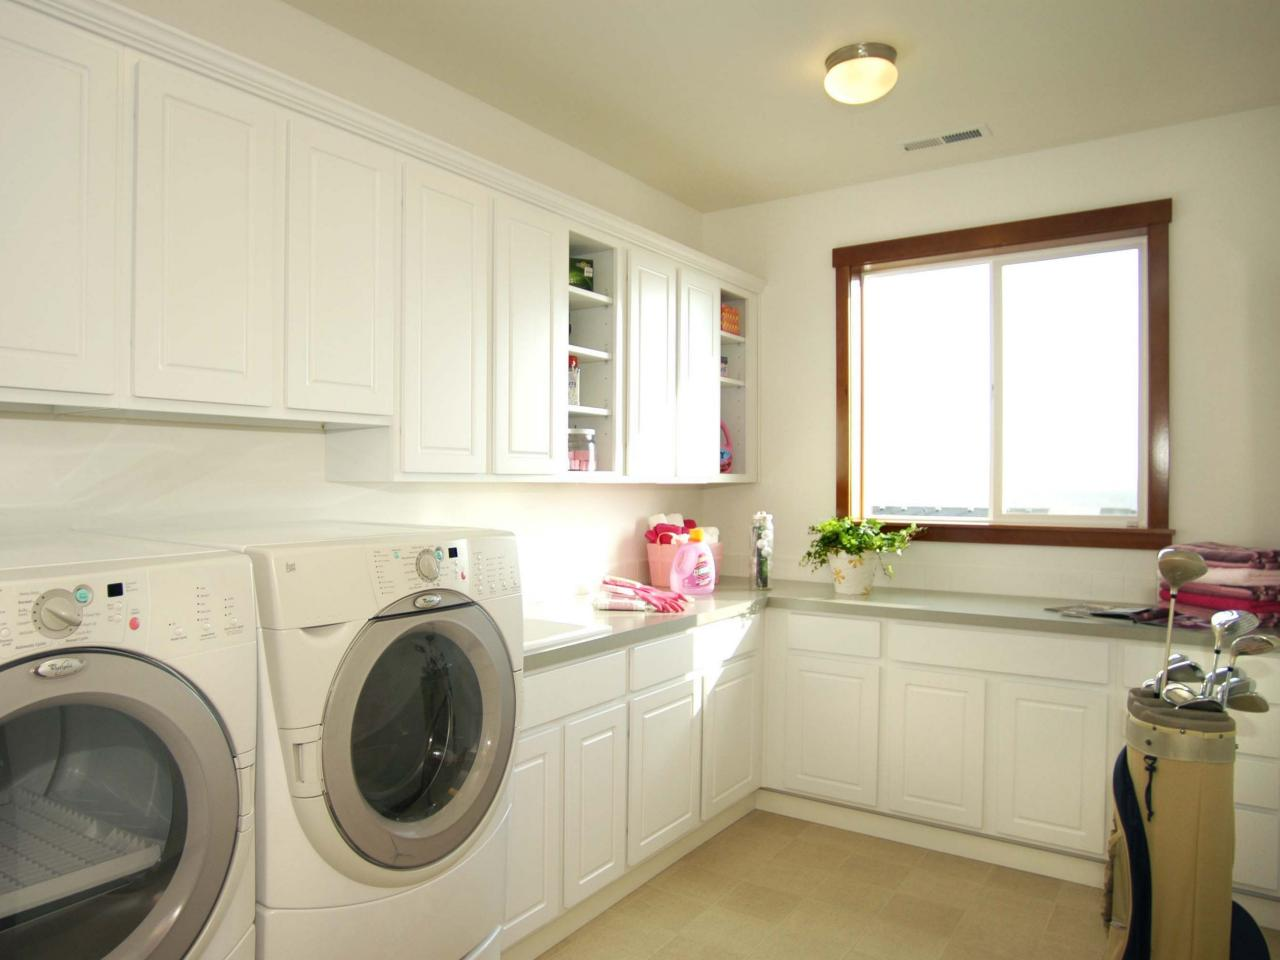 10 Clever Storage Ideas for Your Tiny Laundry Room  HGTVs Decorating  Design Blog  HGTV